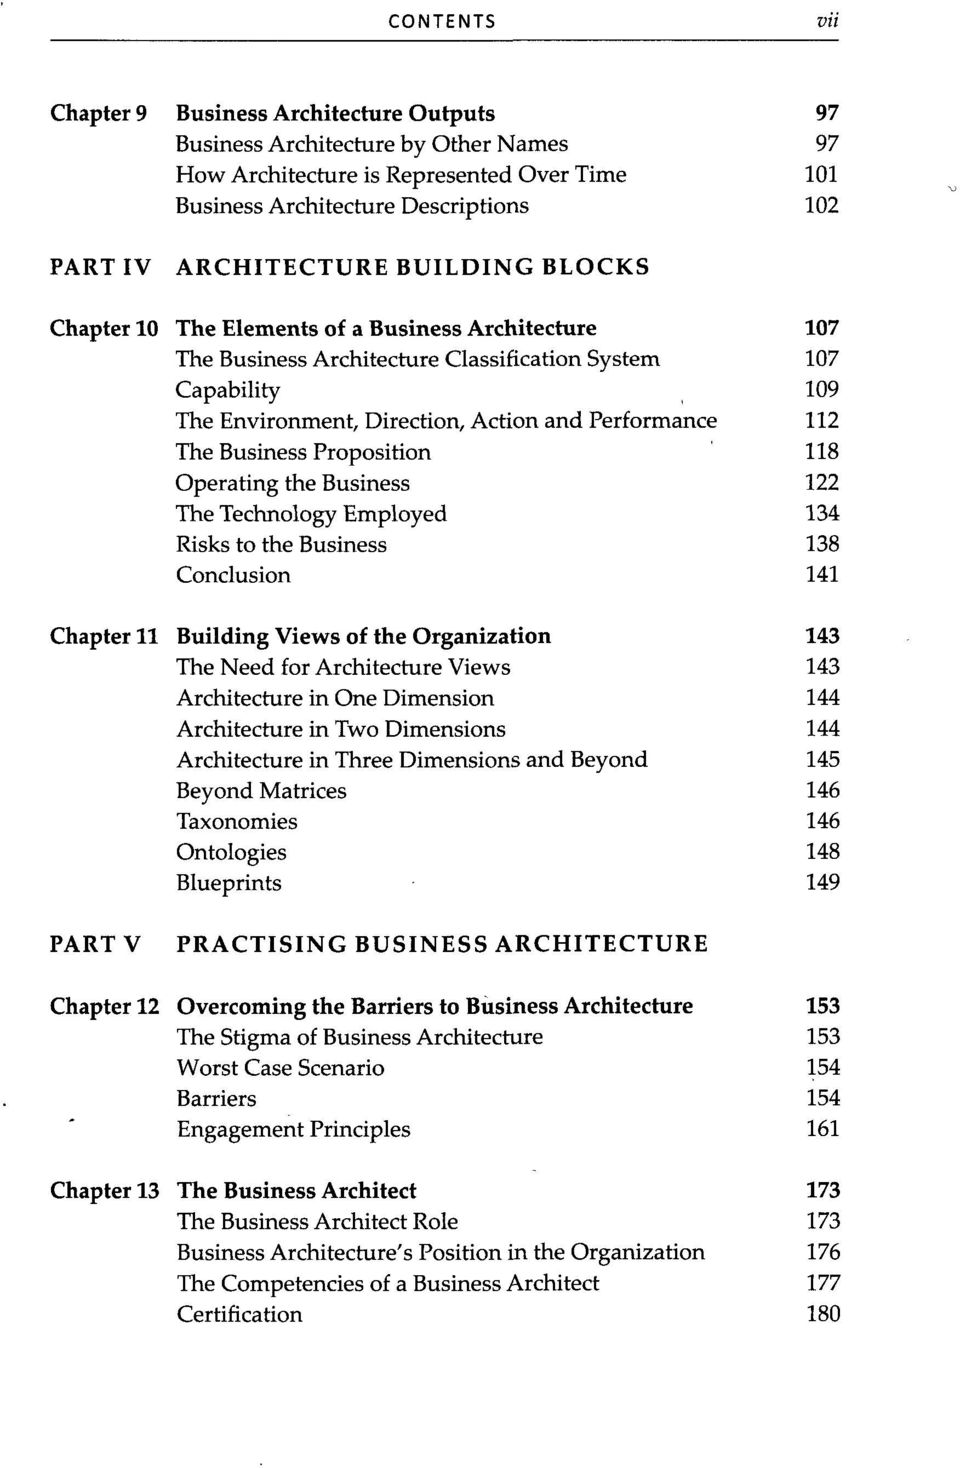 Performance 112 The Business Proposition 118 Operating the Business 122 The Technology Employed 134 Risks to the Business 138 Conclusion 141 Chapter 11 Building Views of the Organization 143 The Need